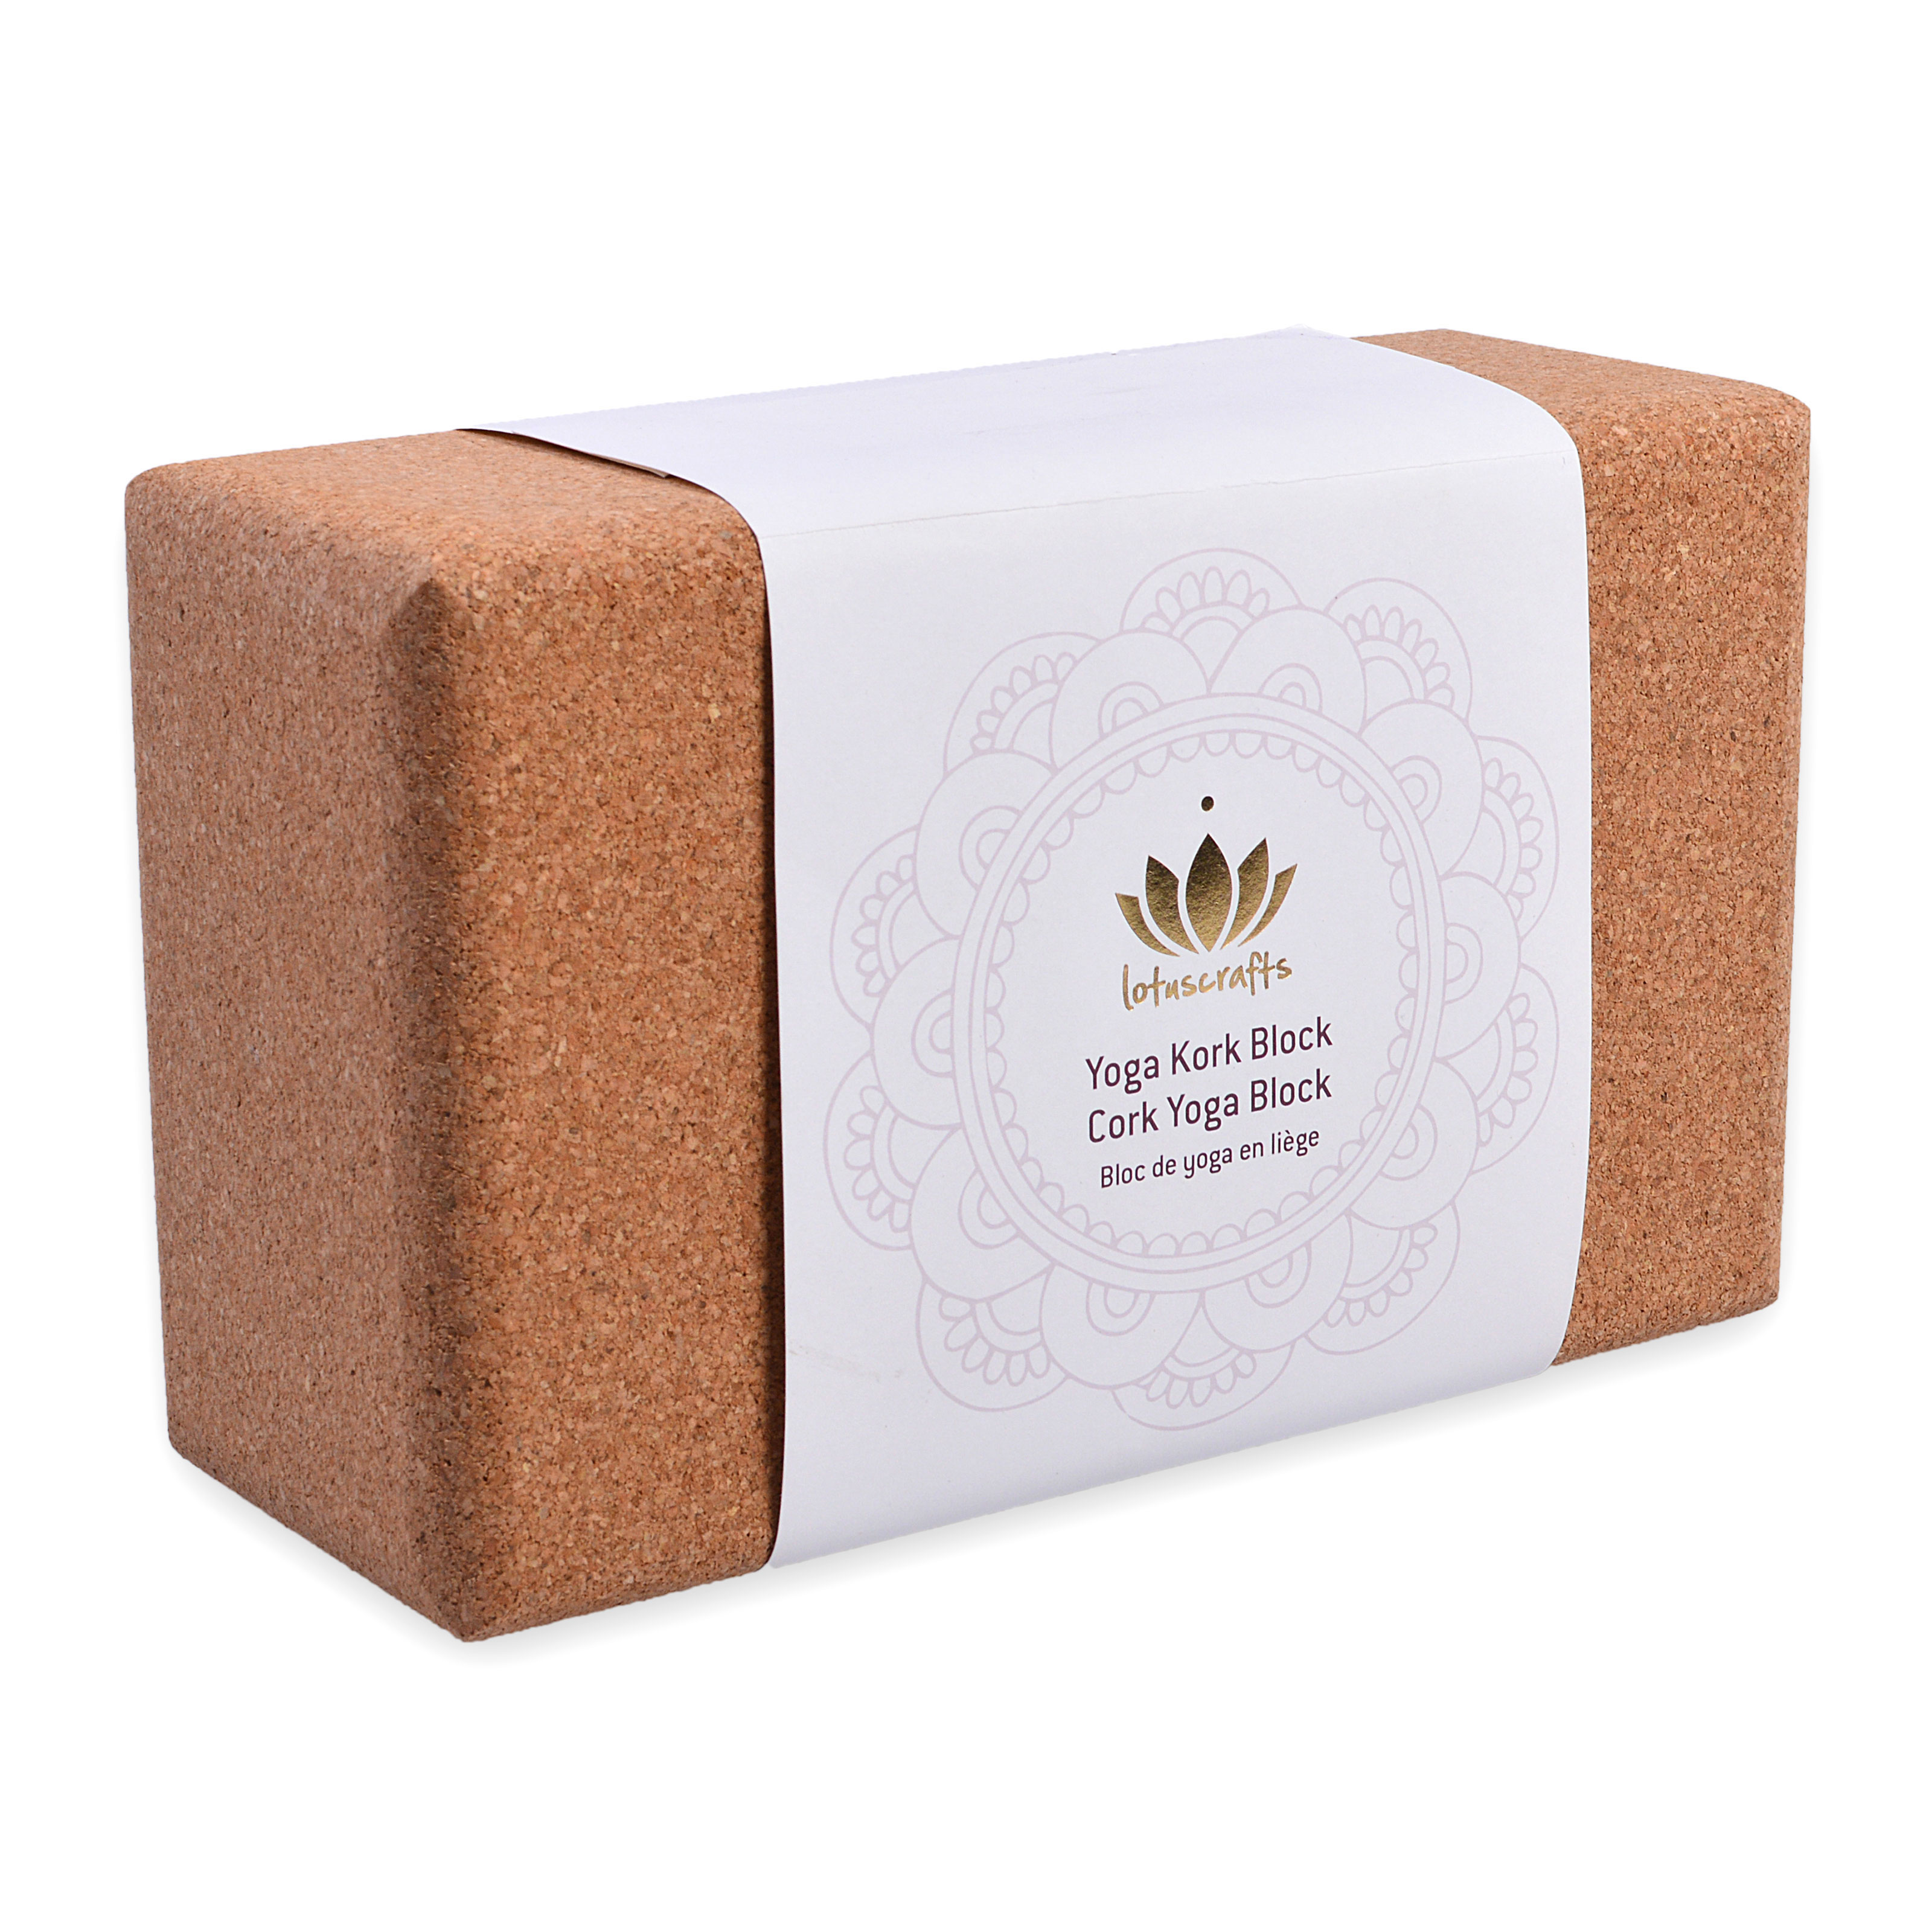 Lotuscrafts sustainable cork brick oversized